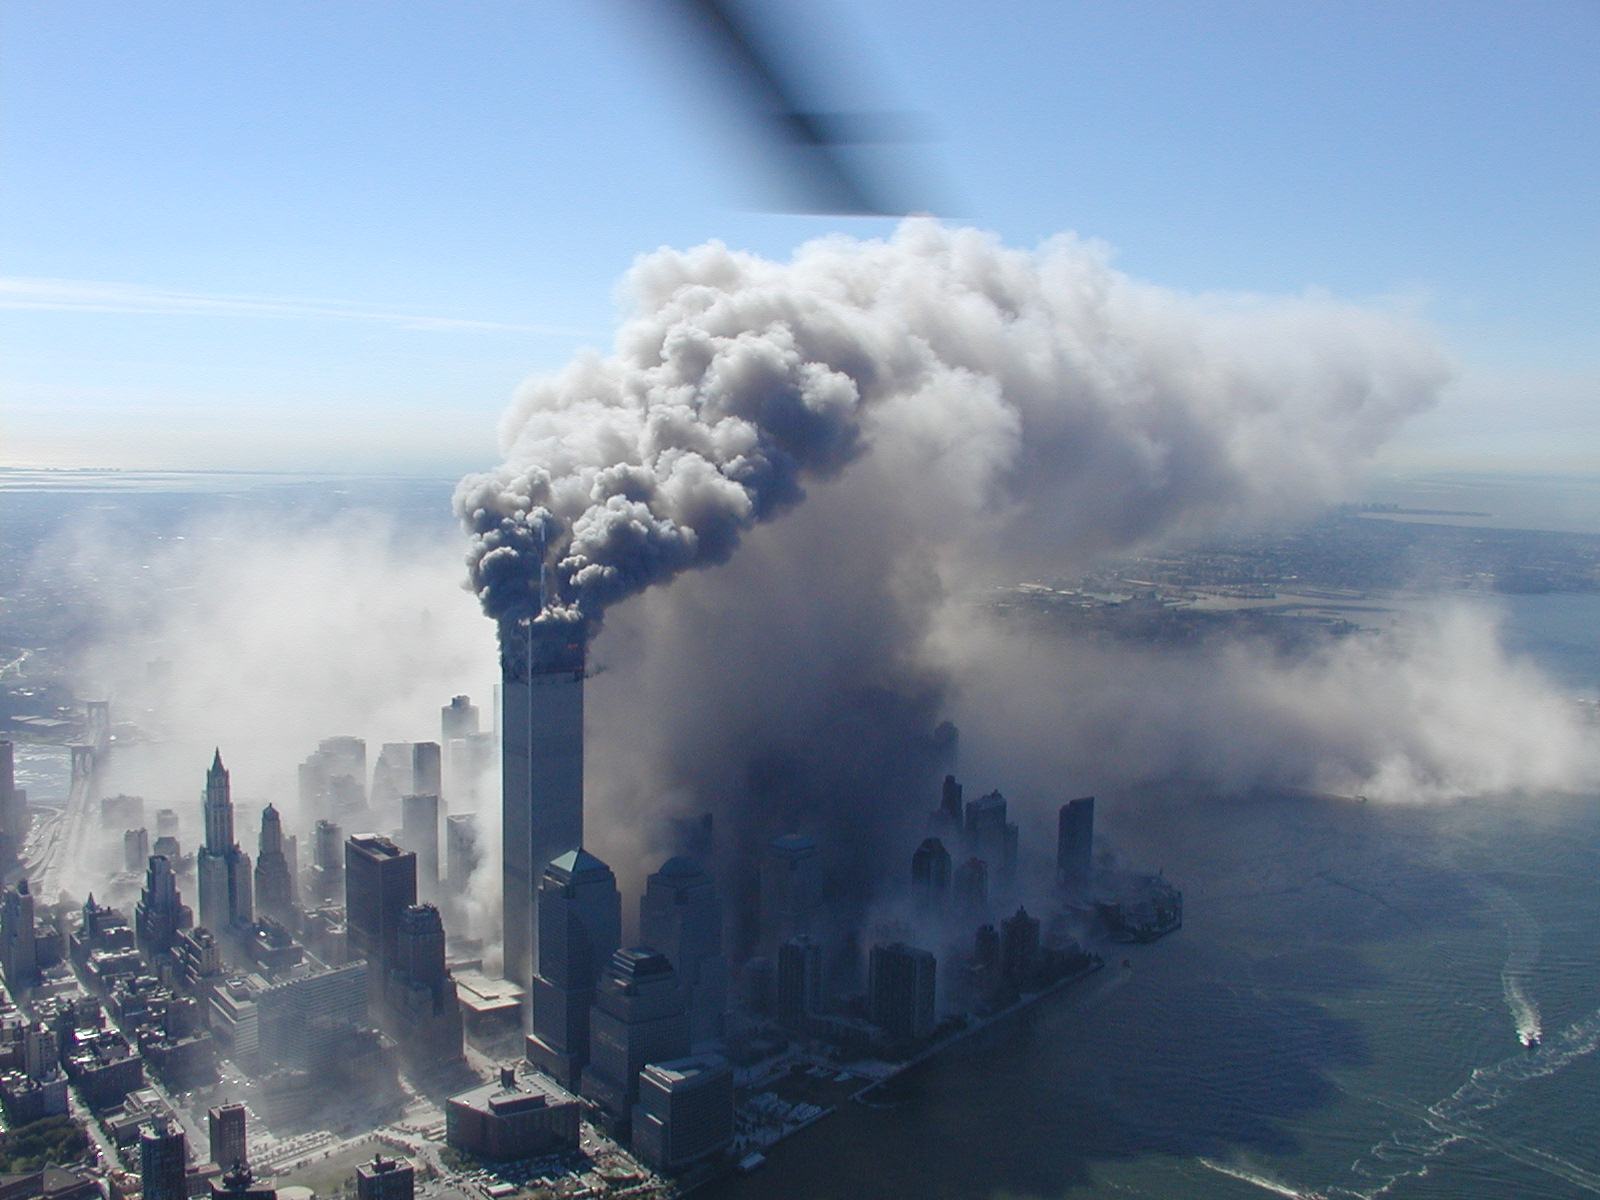 Photo Credit:  9/11 Photos  via Flickr